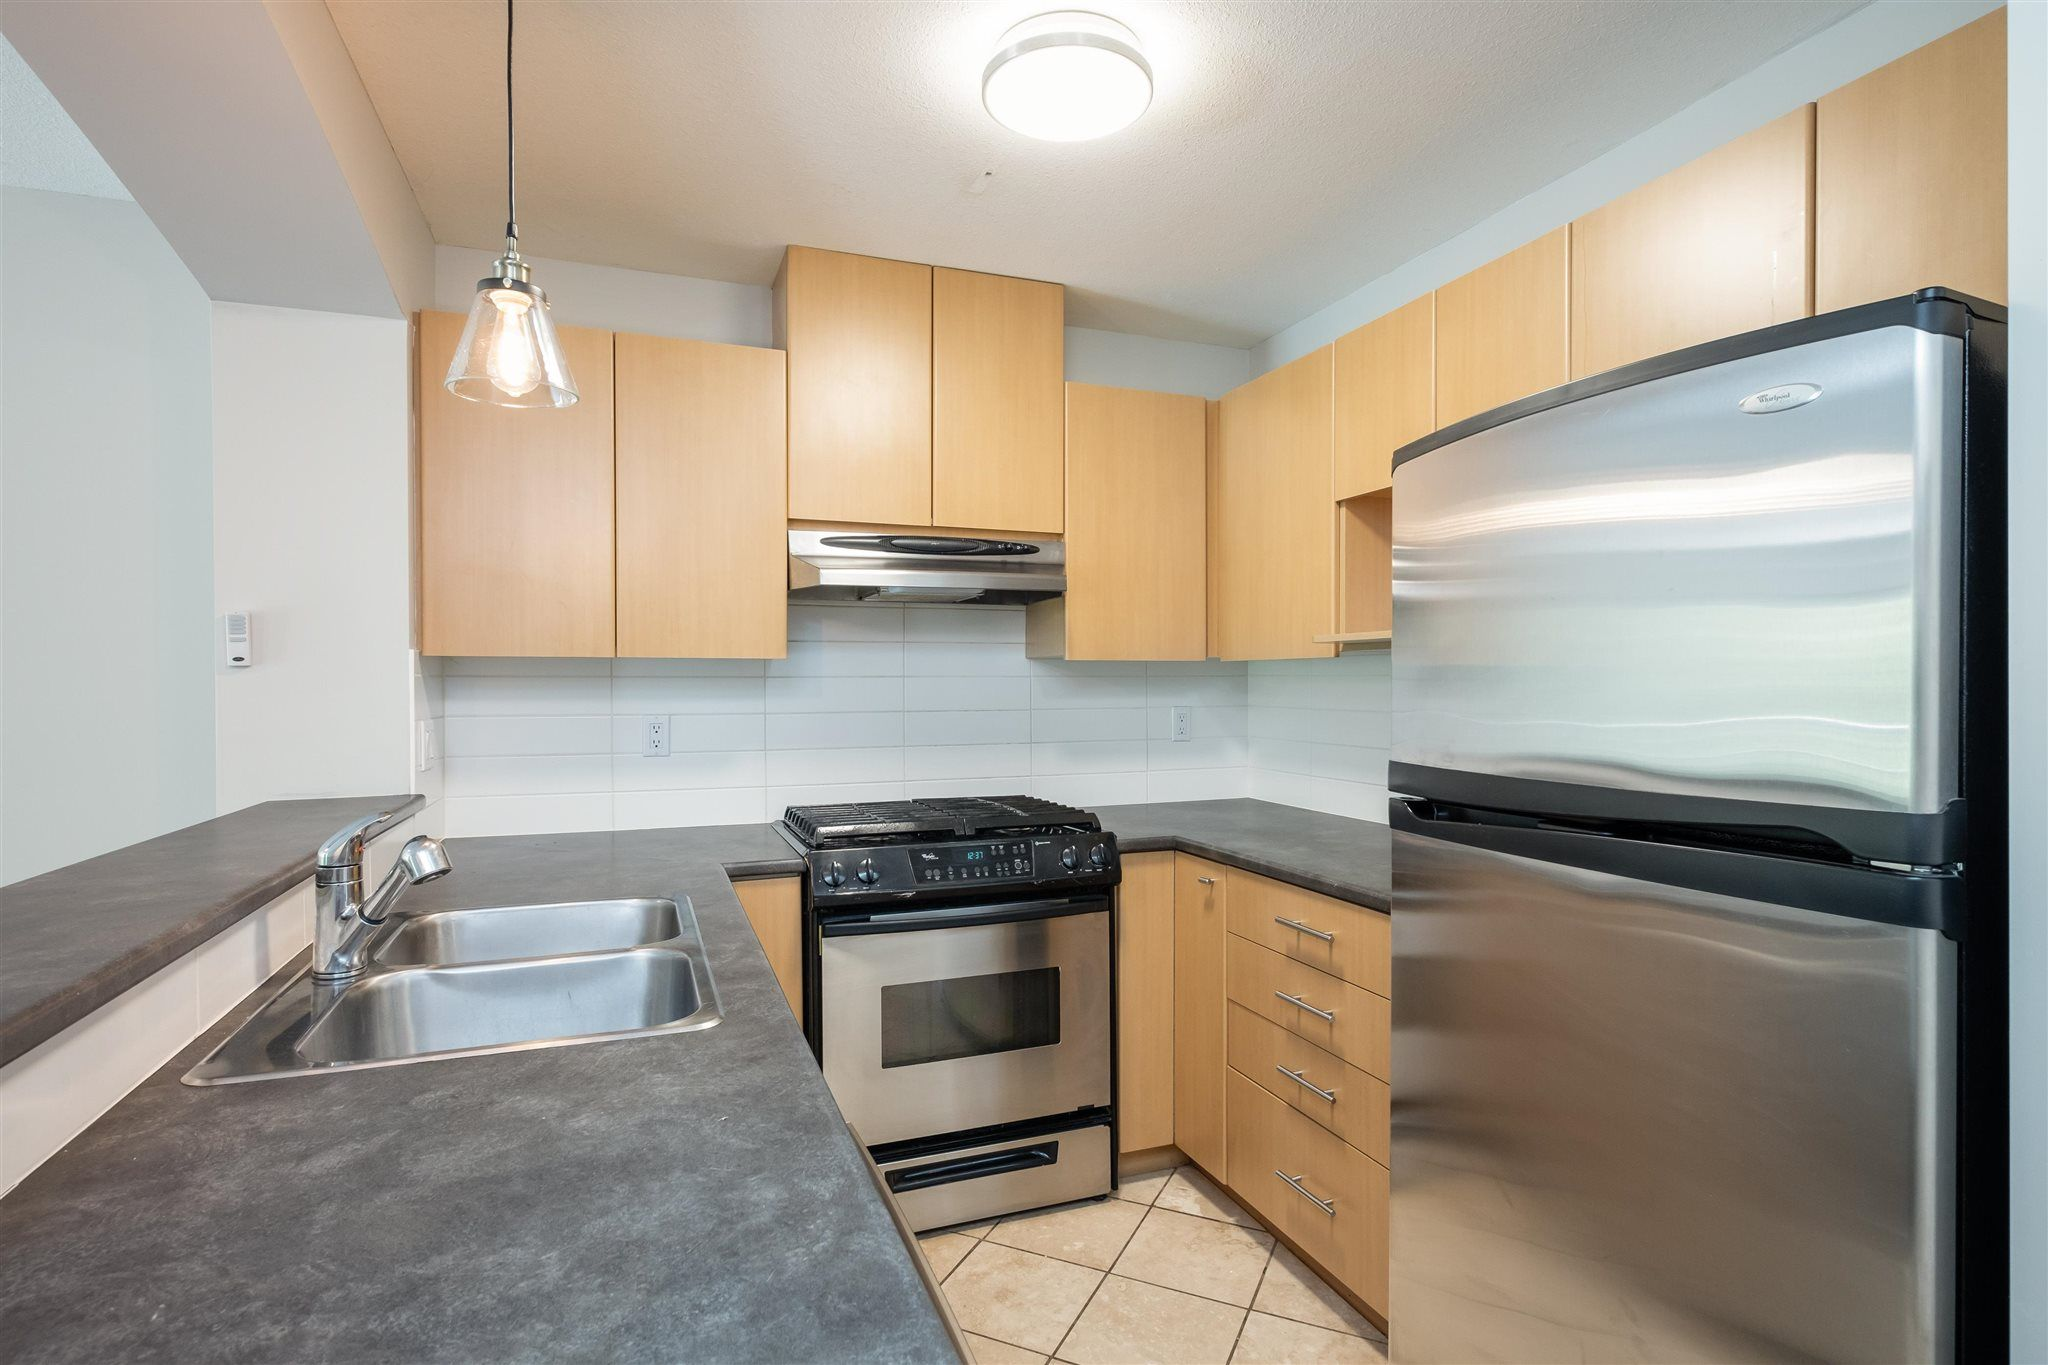 """Photo 8: Photos: 211 9339 UNIVERSITY Crescent in Burnaby: Simon Fraser Univer. Condo for sale in """"HARMONY"""" (Burnaby North)  : MLS®# R2597666"""